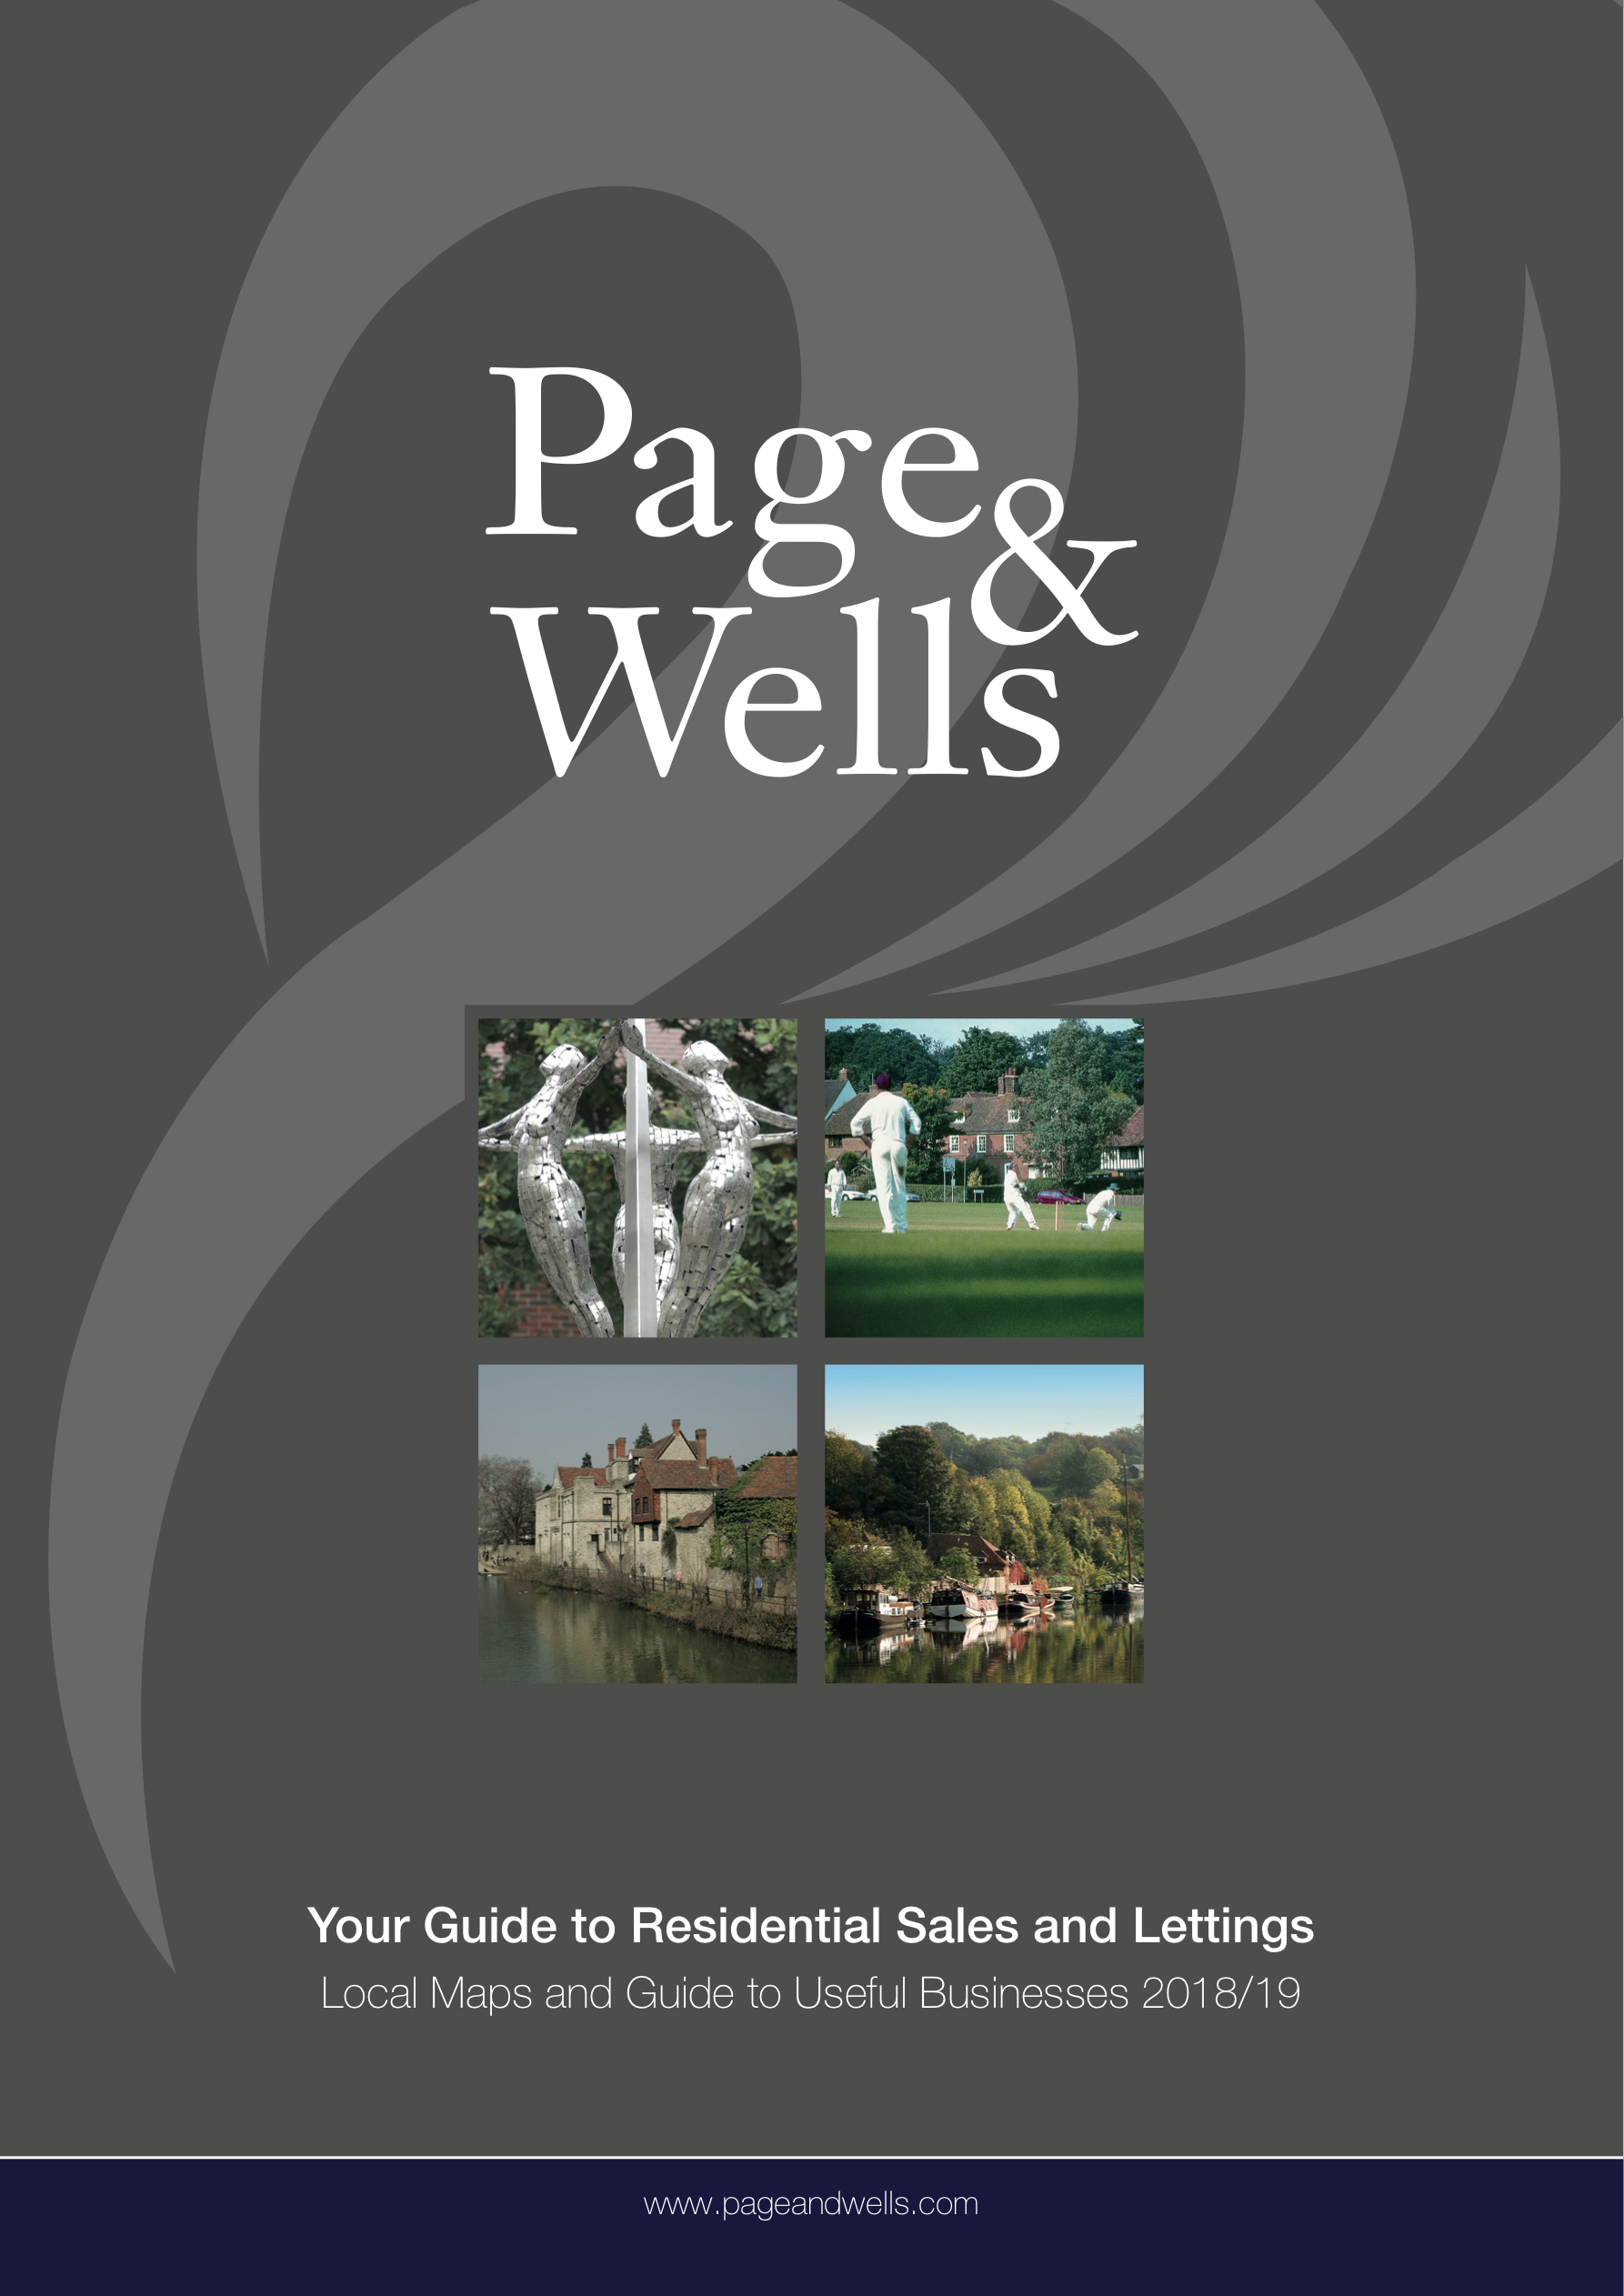 Page & Wells